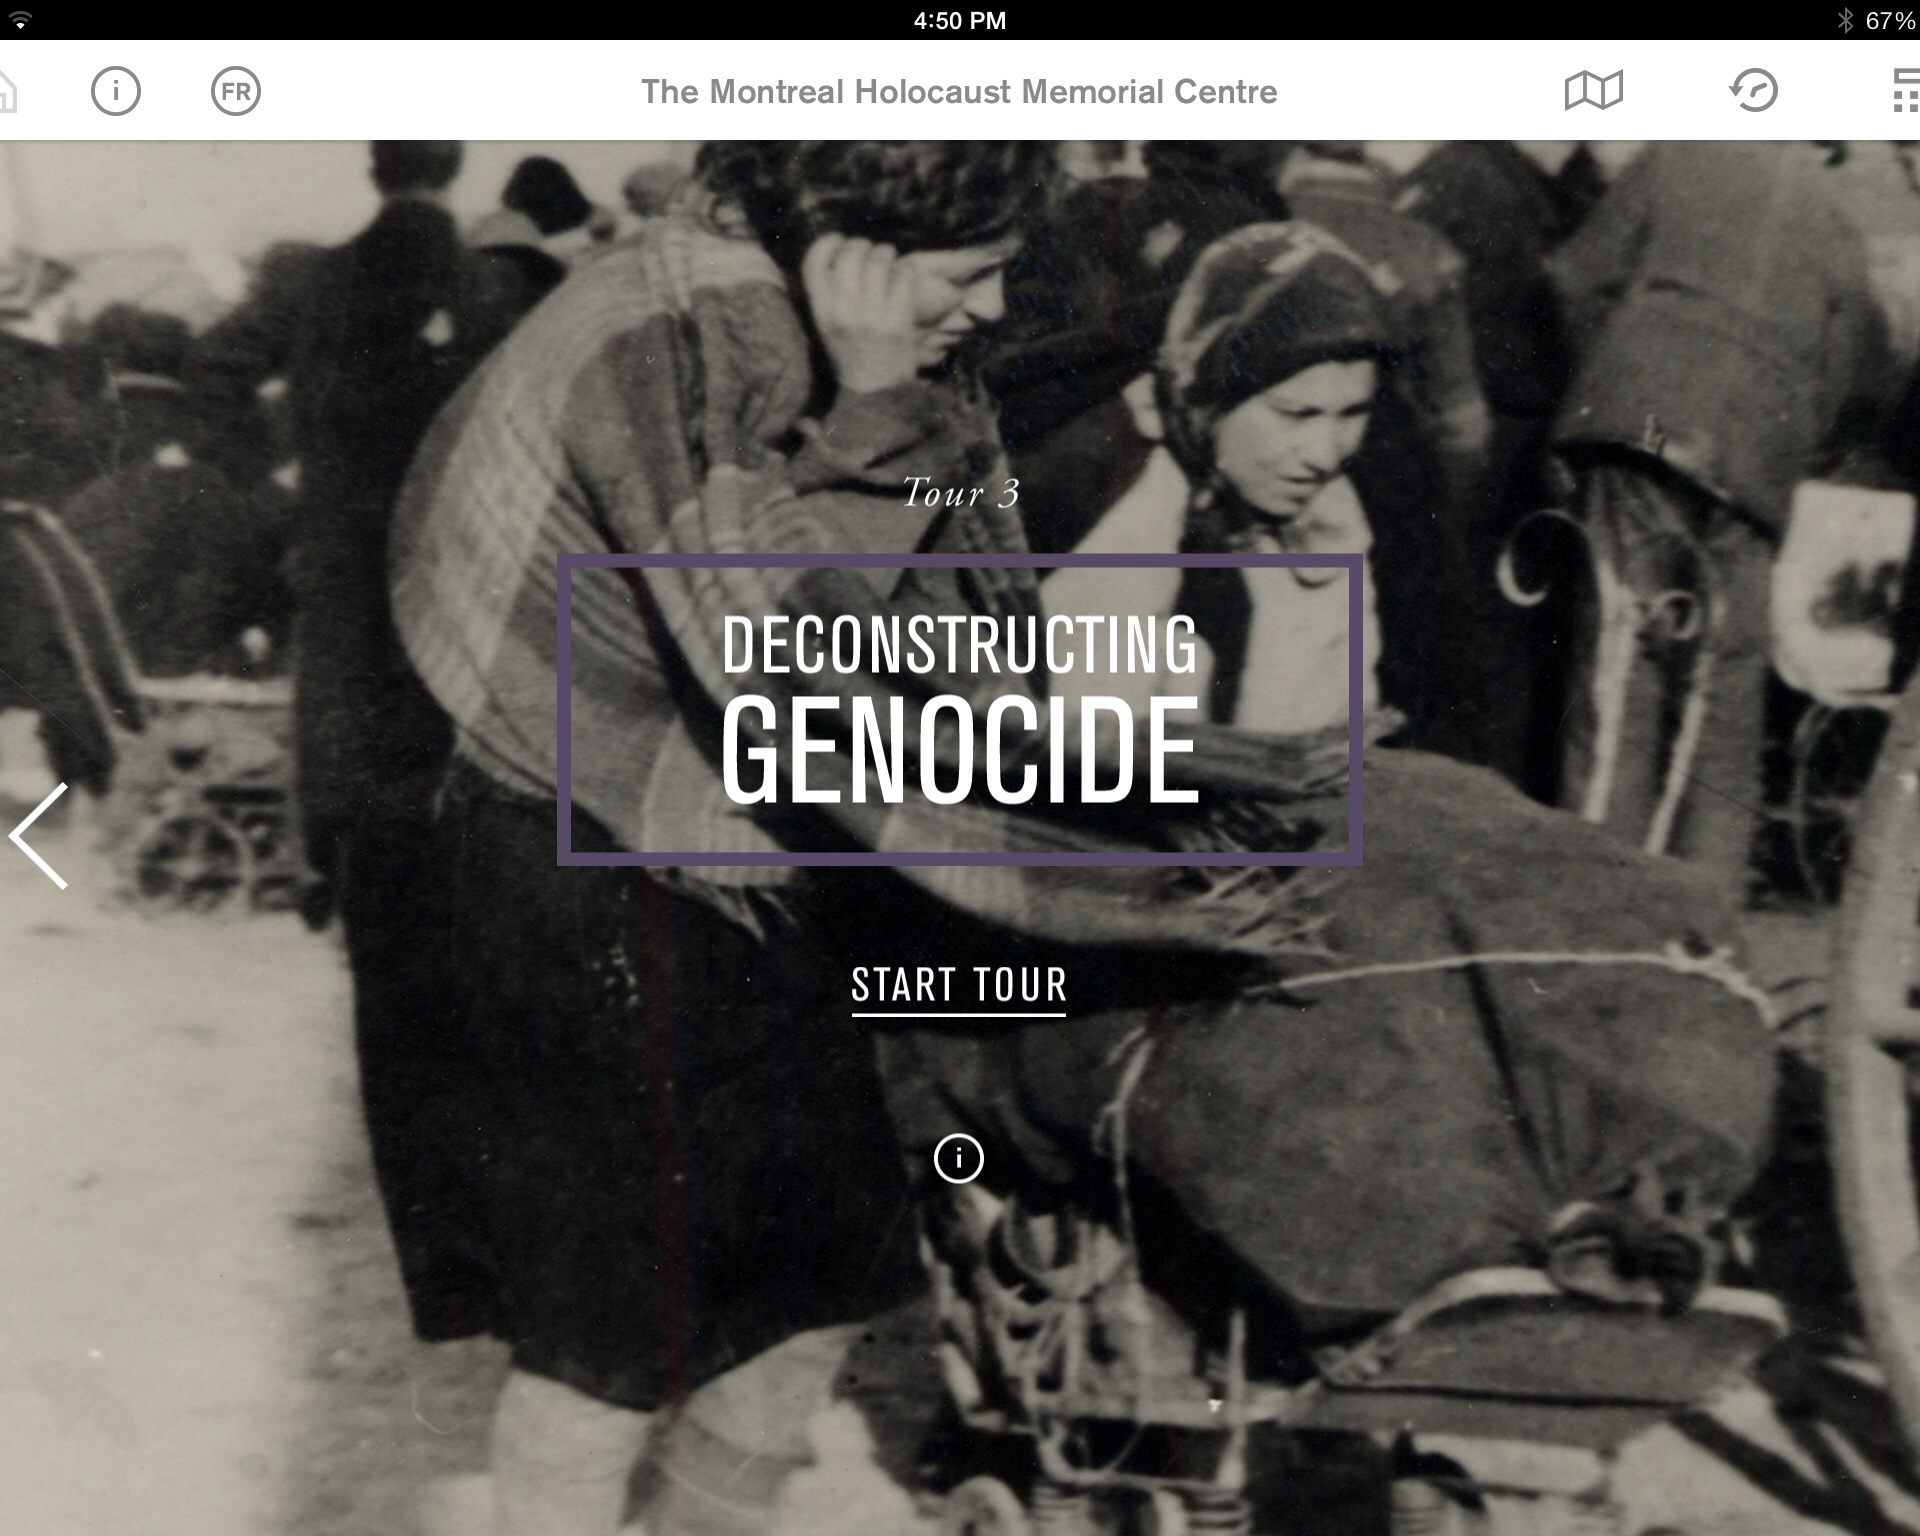 3rd tour: Deconstructing Genocide from the Montreal Holocaust Museum's app.